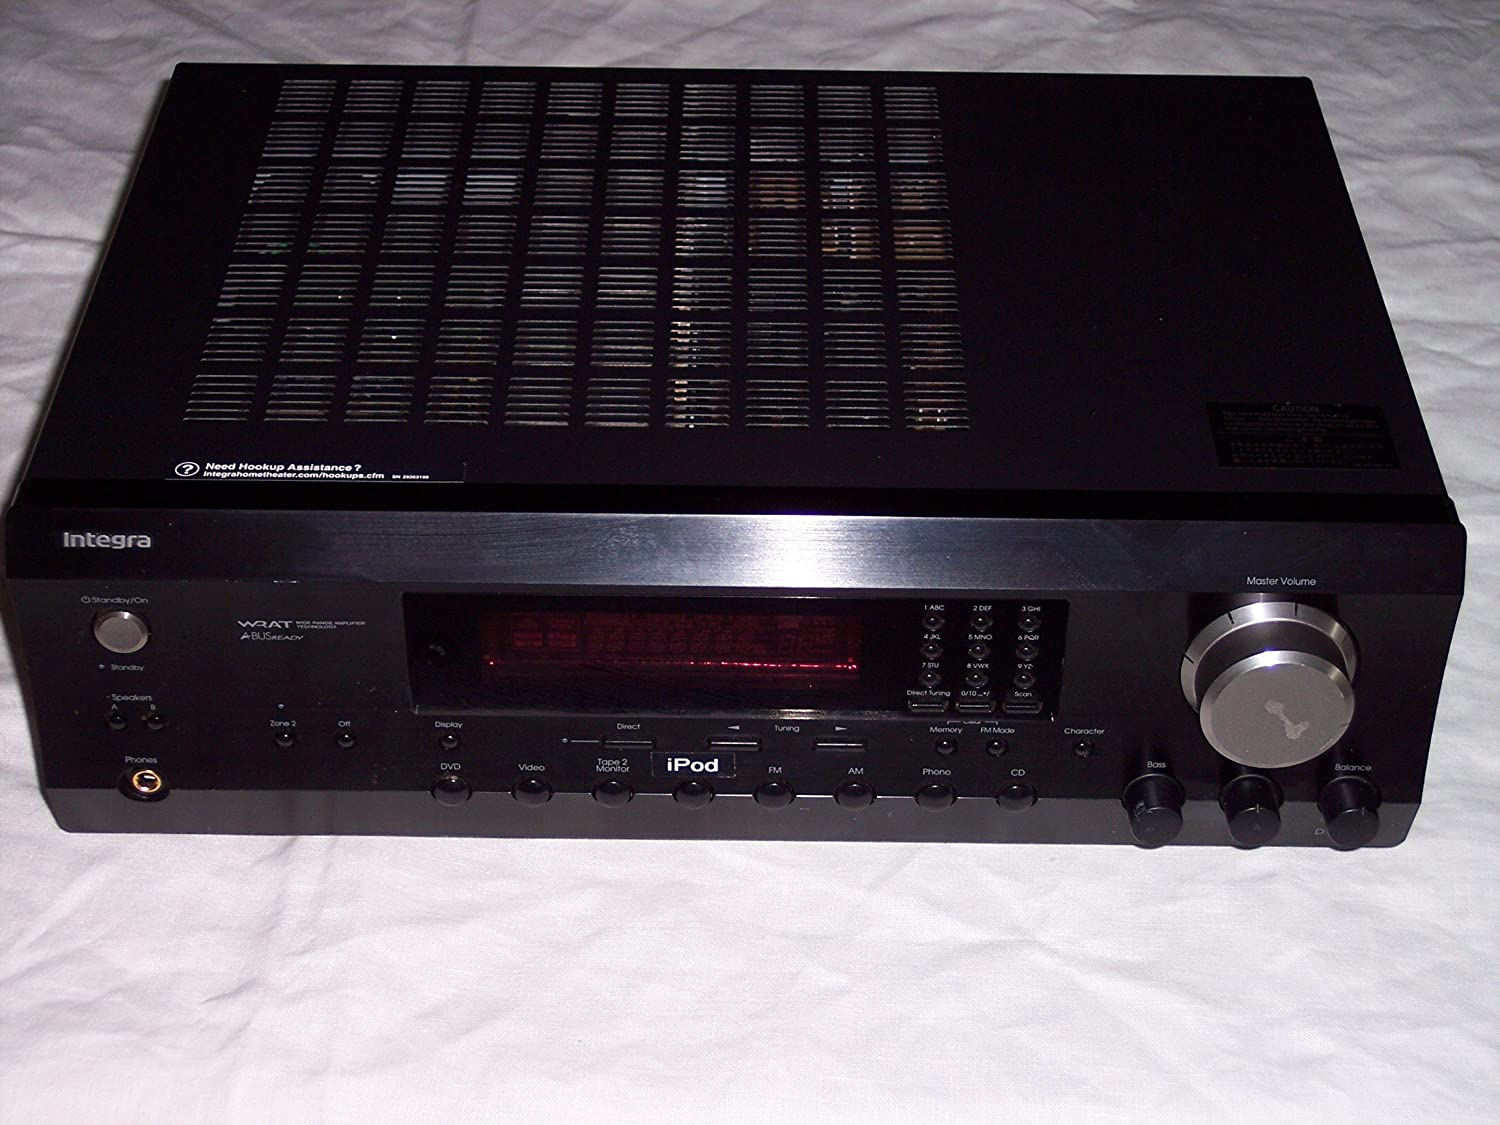 Integra Dtm 53 Am Fm Av Receiver Amplifier Multi Zone Load Cell Ldu 691 Specifications No Remote Home Audio Theater